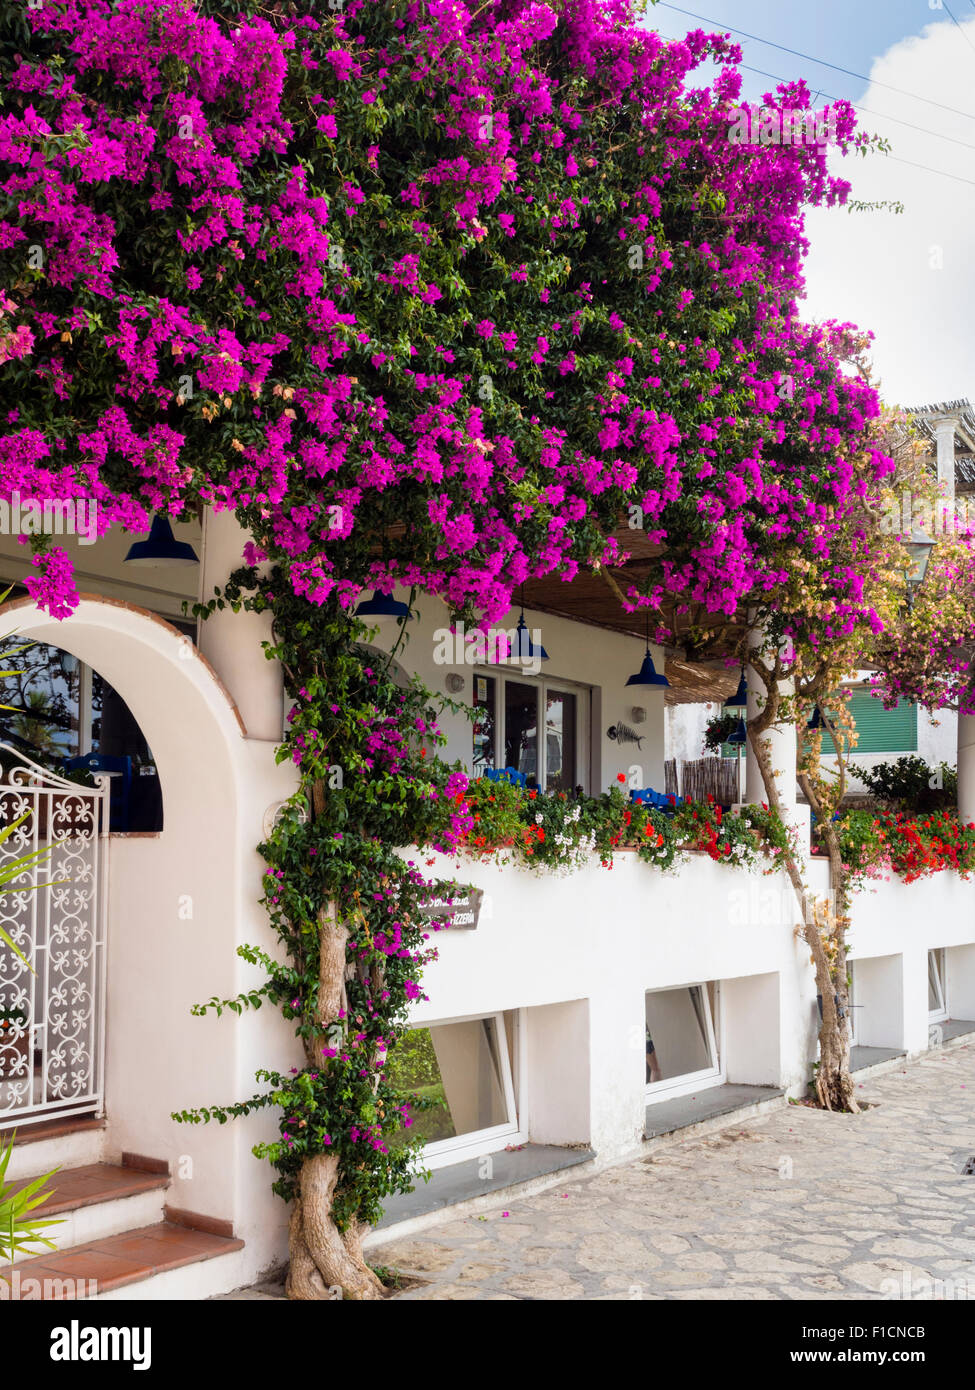 Bougainvillea flowers in Capri Italy - Stock Image